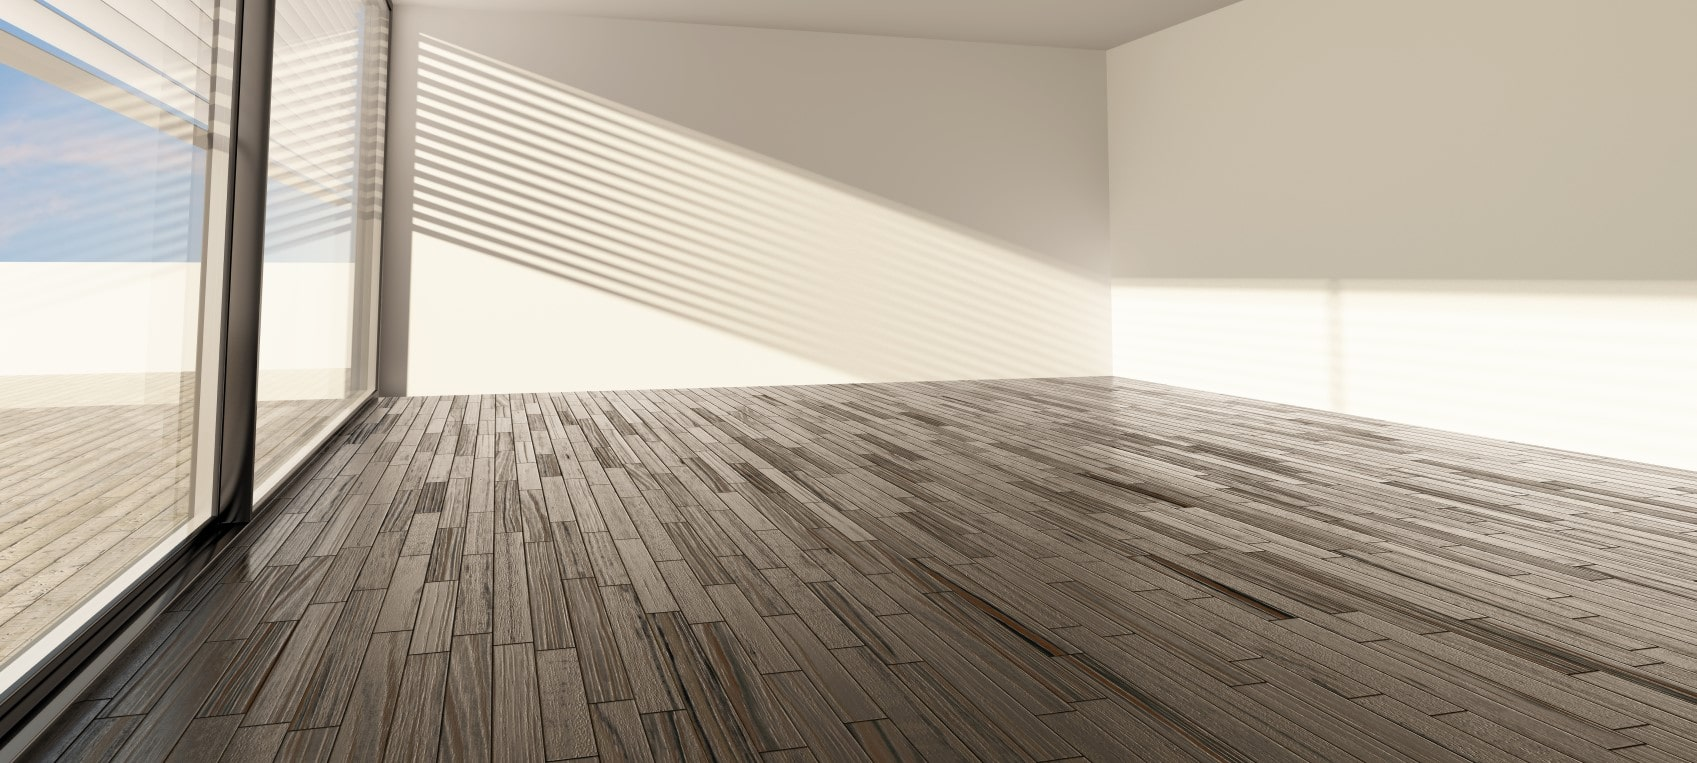 Sound Acoustic Solutions for Floors